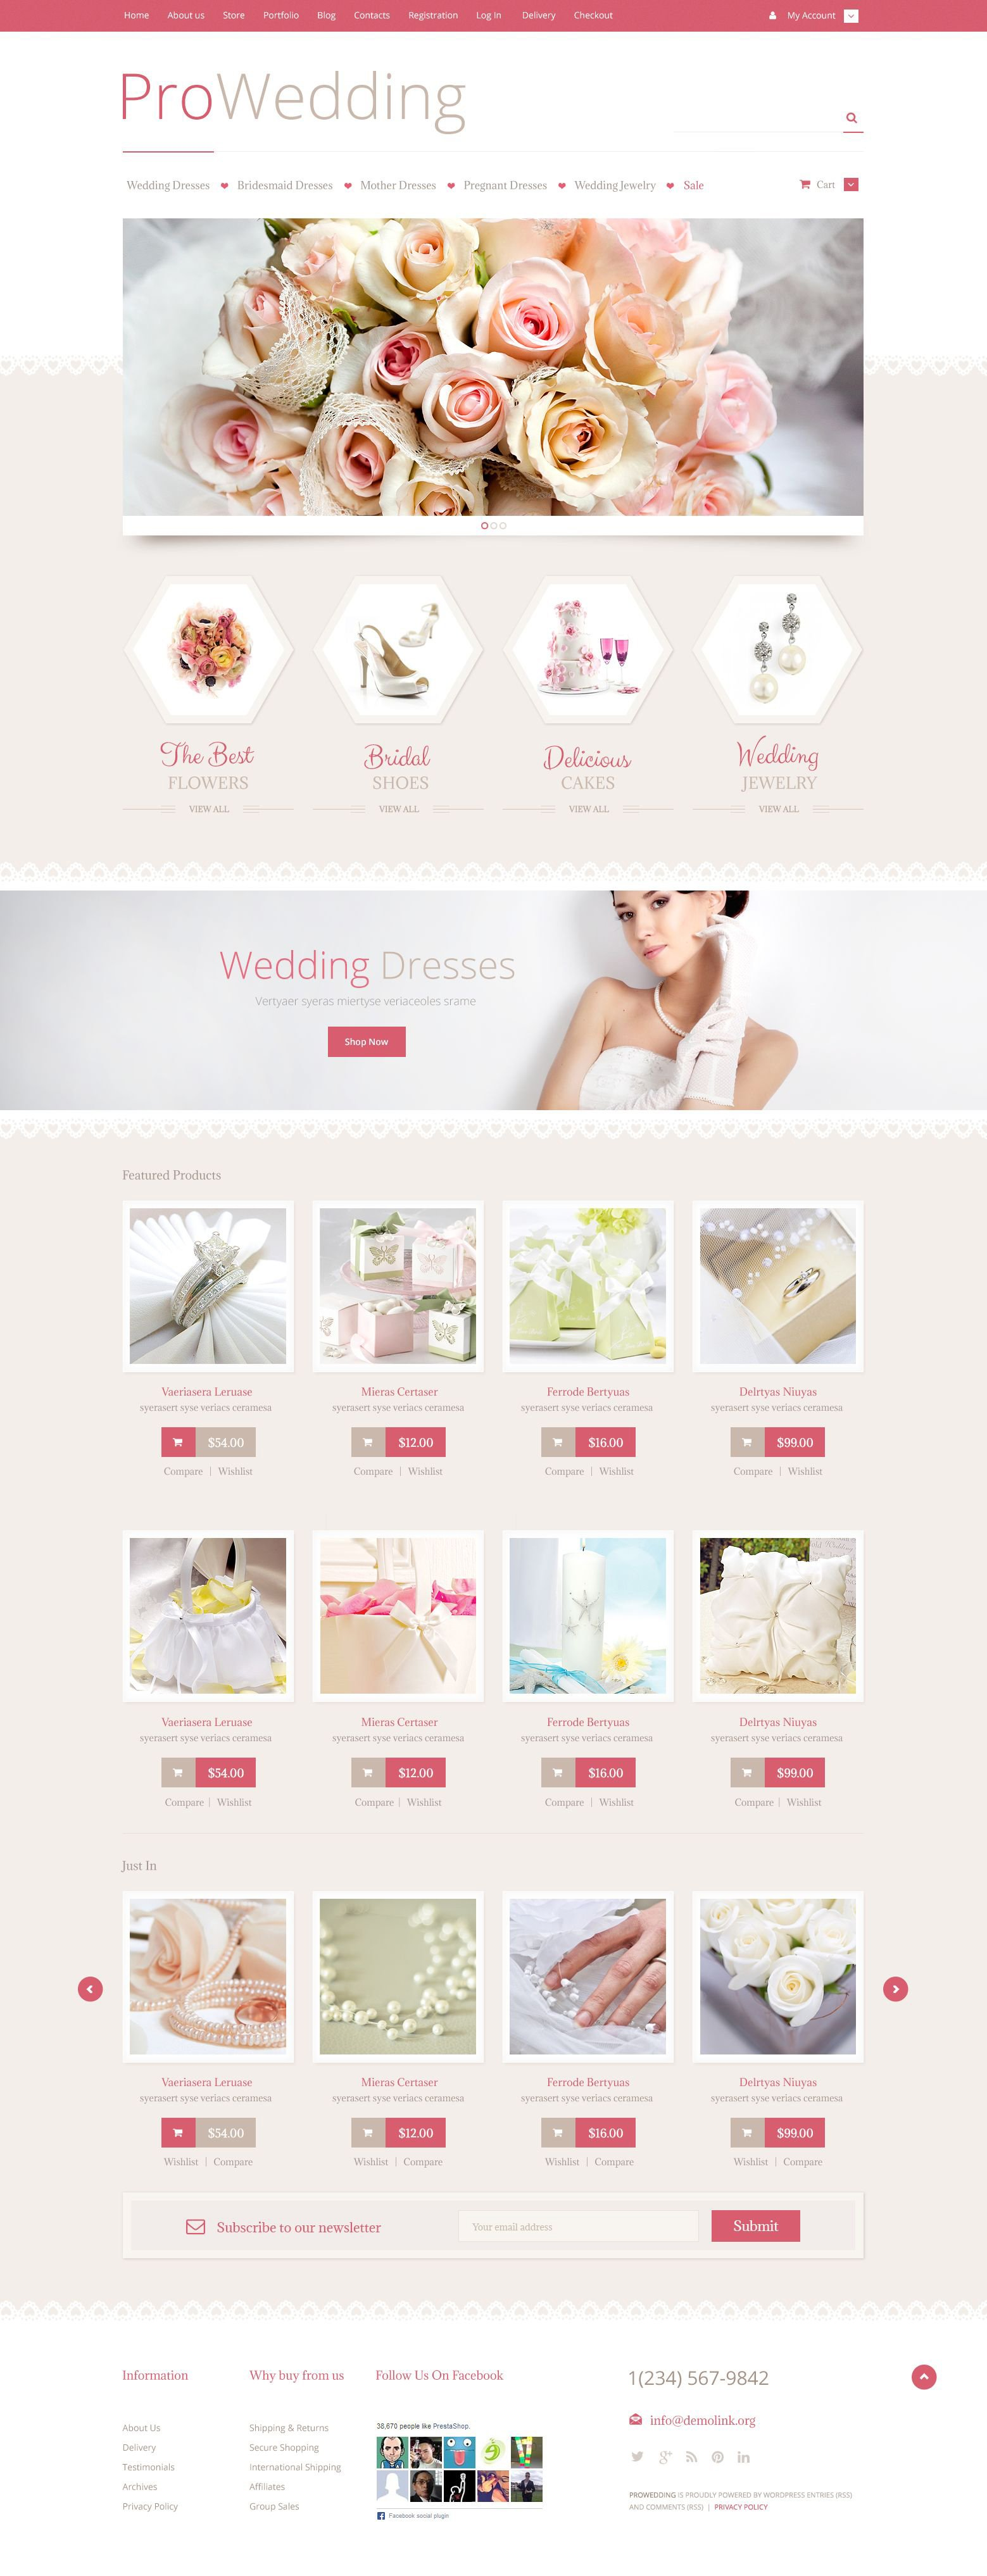 The Pro Wedding Online Store WooCommerce Design 53023, one of the best WooCommerce themes of its kind (wedding, most popular), also known as pro wedding online store WooCommerce template, reception WooCommerce template, bridal WooCommerce template, ceremony WooCommerce template, gifts WooCommerce template, jewel WooCommerce template, specials WooCommerce template, offers WooCommerce template, rings WooCommerce template, flowers WooCommerce template, bouquet designers WooCommerce template, candles WooCommerce template, glasses WooCommerce template, decoration WooCommerce template, style WooCommerce template, accessories WooCommerce template, crown WooCommerce template, tiara WooCommerce template, gown WooCommerce template, veil WooCommerce template, dress WooCommerce template, collection WooCommerce template, couple WooCommerce template, fiancee WooCommerce template, marriage WooCommerce template, bridegroom WooCommerce template, husband WooCommerce template, wife WooCommerce template, match and related with pro wedding online store, reception, bridal, ceremony, gifts, jewel, specials, offers, rings, flowers, bouquet designers, candles, glasses, decoration, style, accessories, crown, tiara, gown, veil, dress, collection, couple, fiancee, marriage, bridegroom, husband, wife, match, etc.